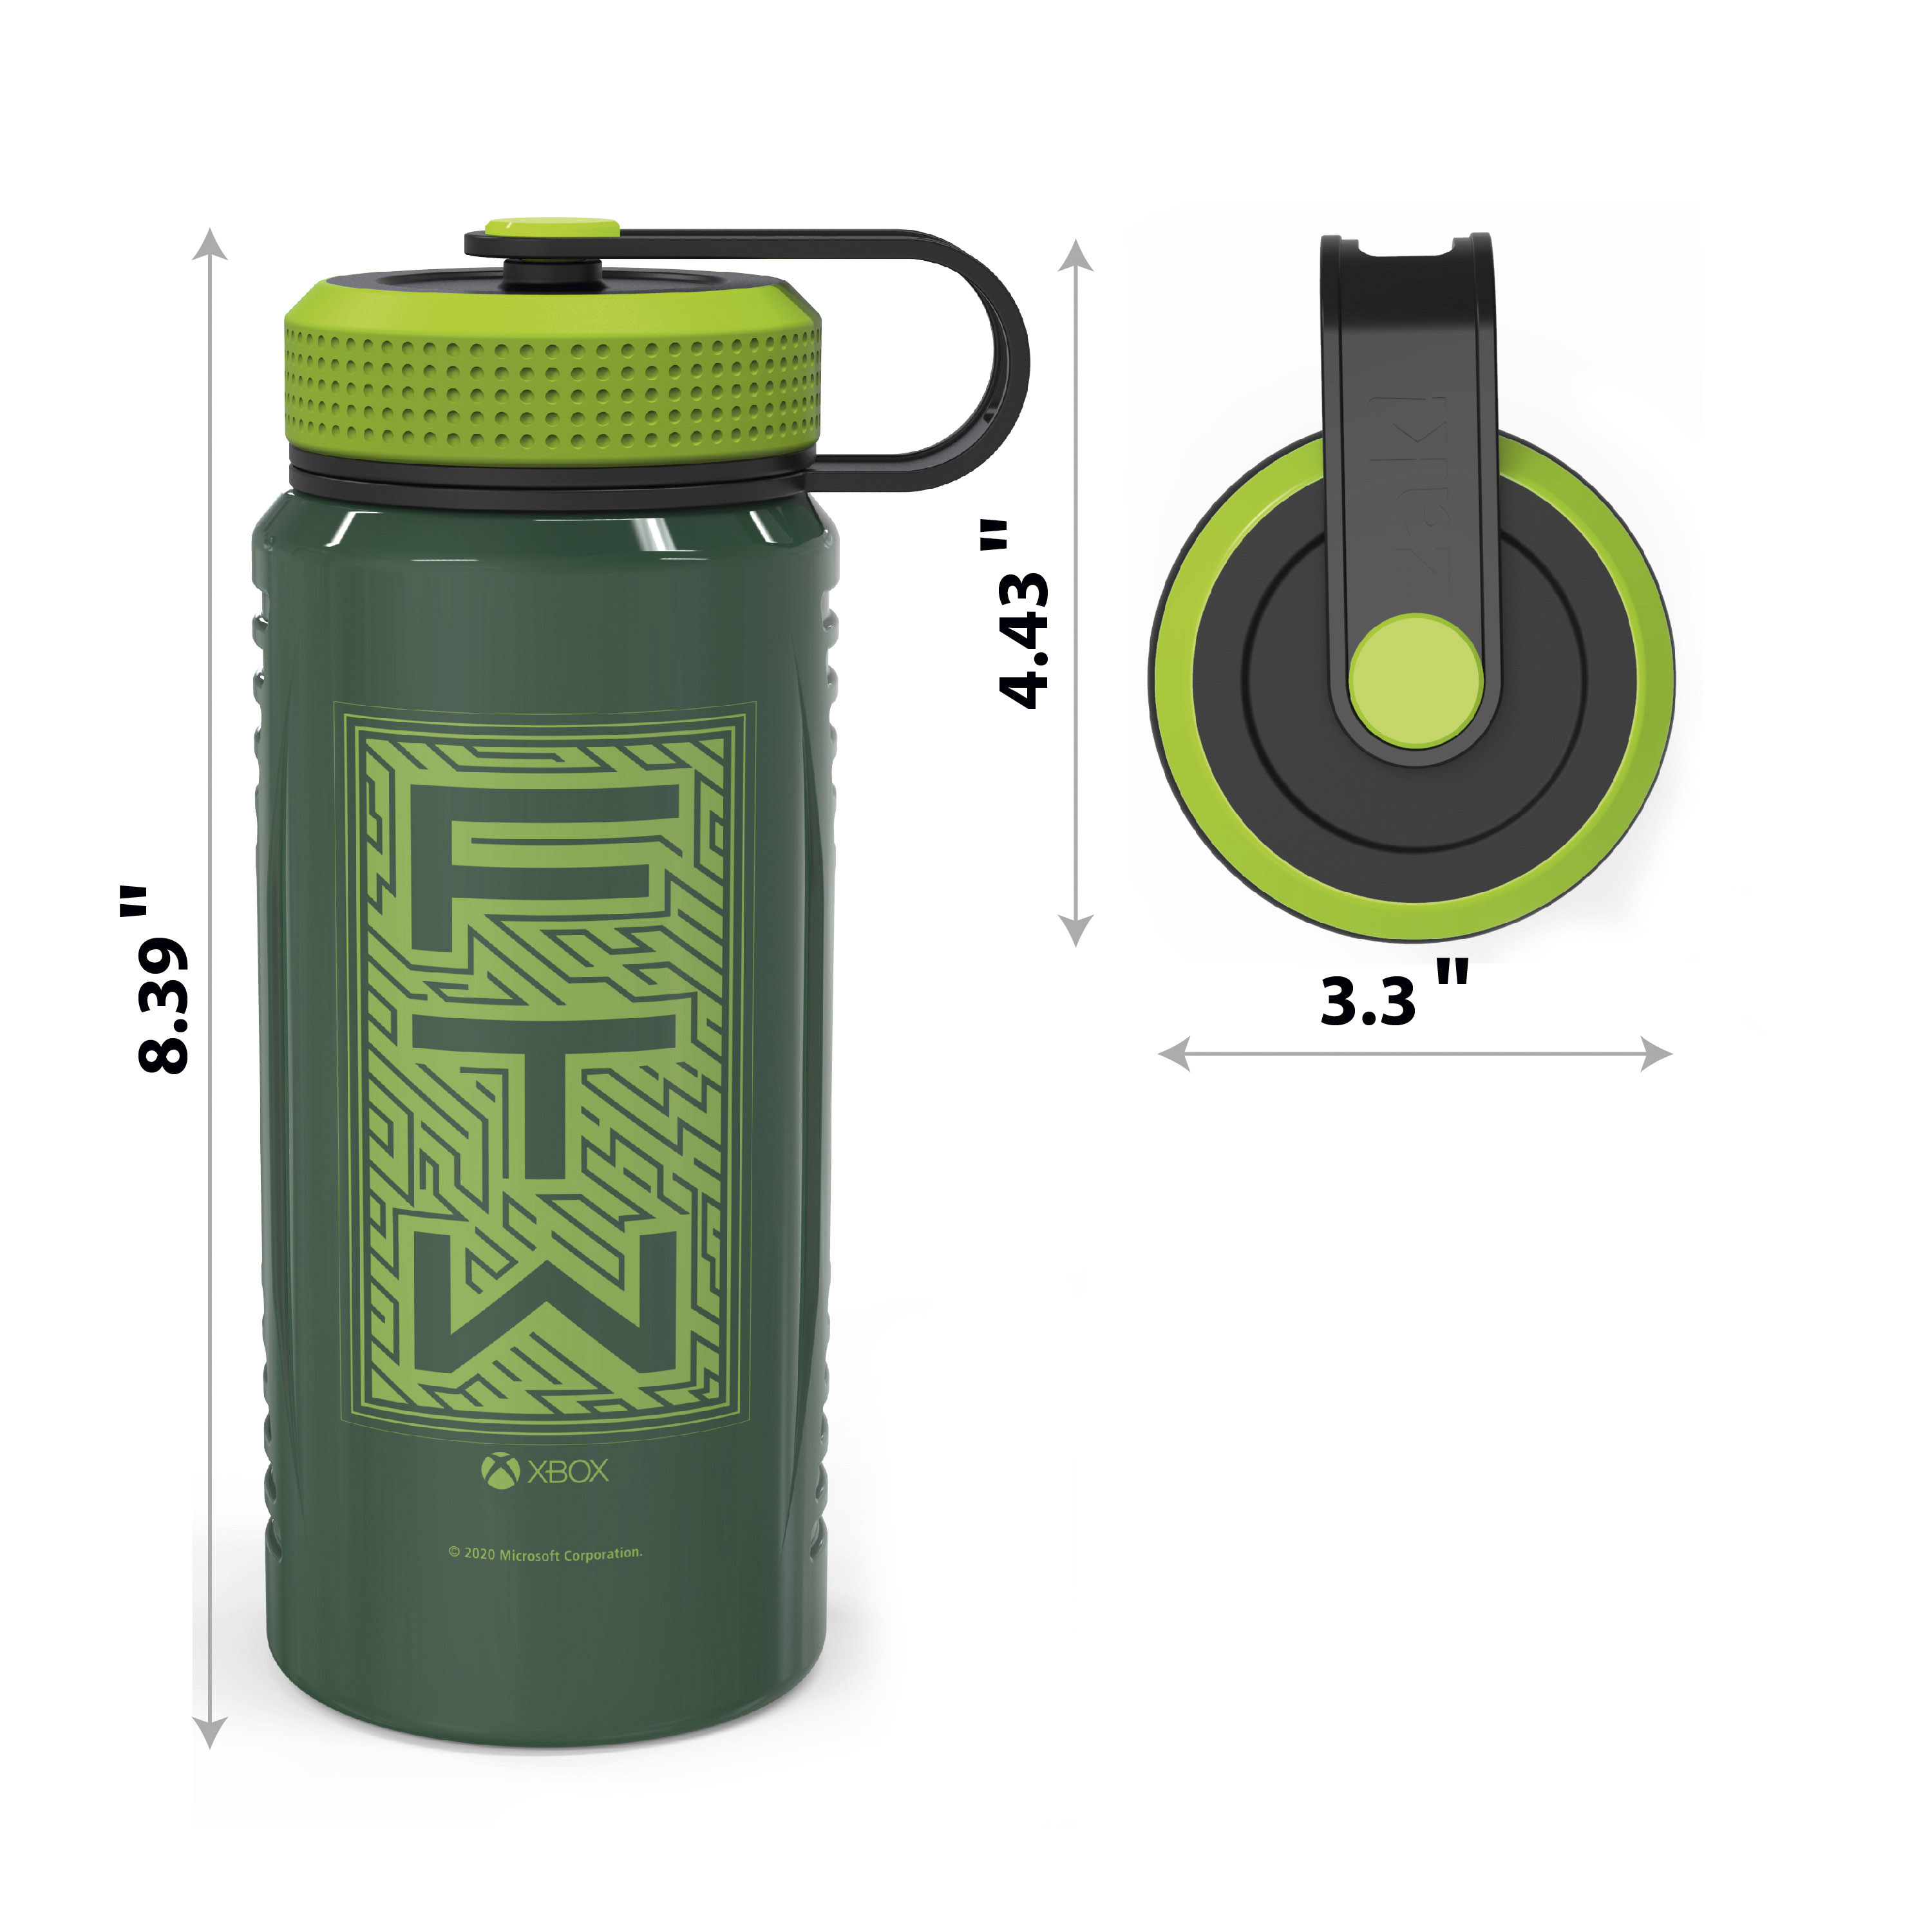 Xbox 24 ounce Stainless Steel Insulated Water Bottle, For the Win slideshow image 8